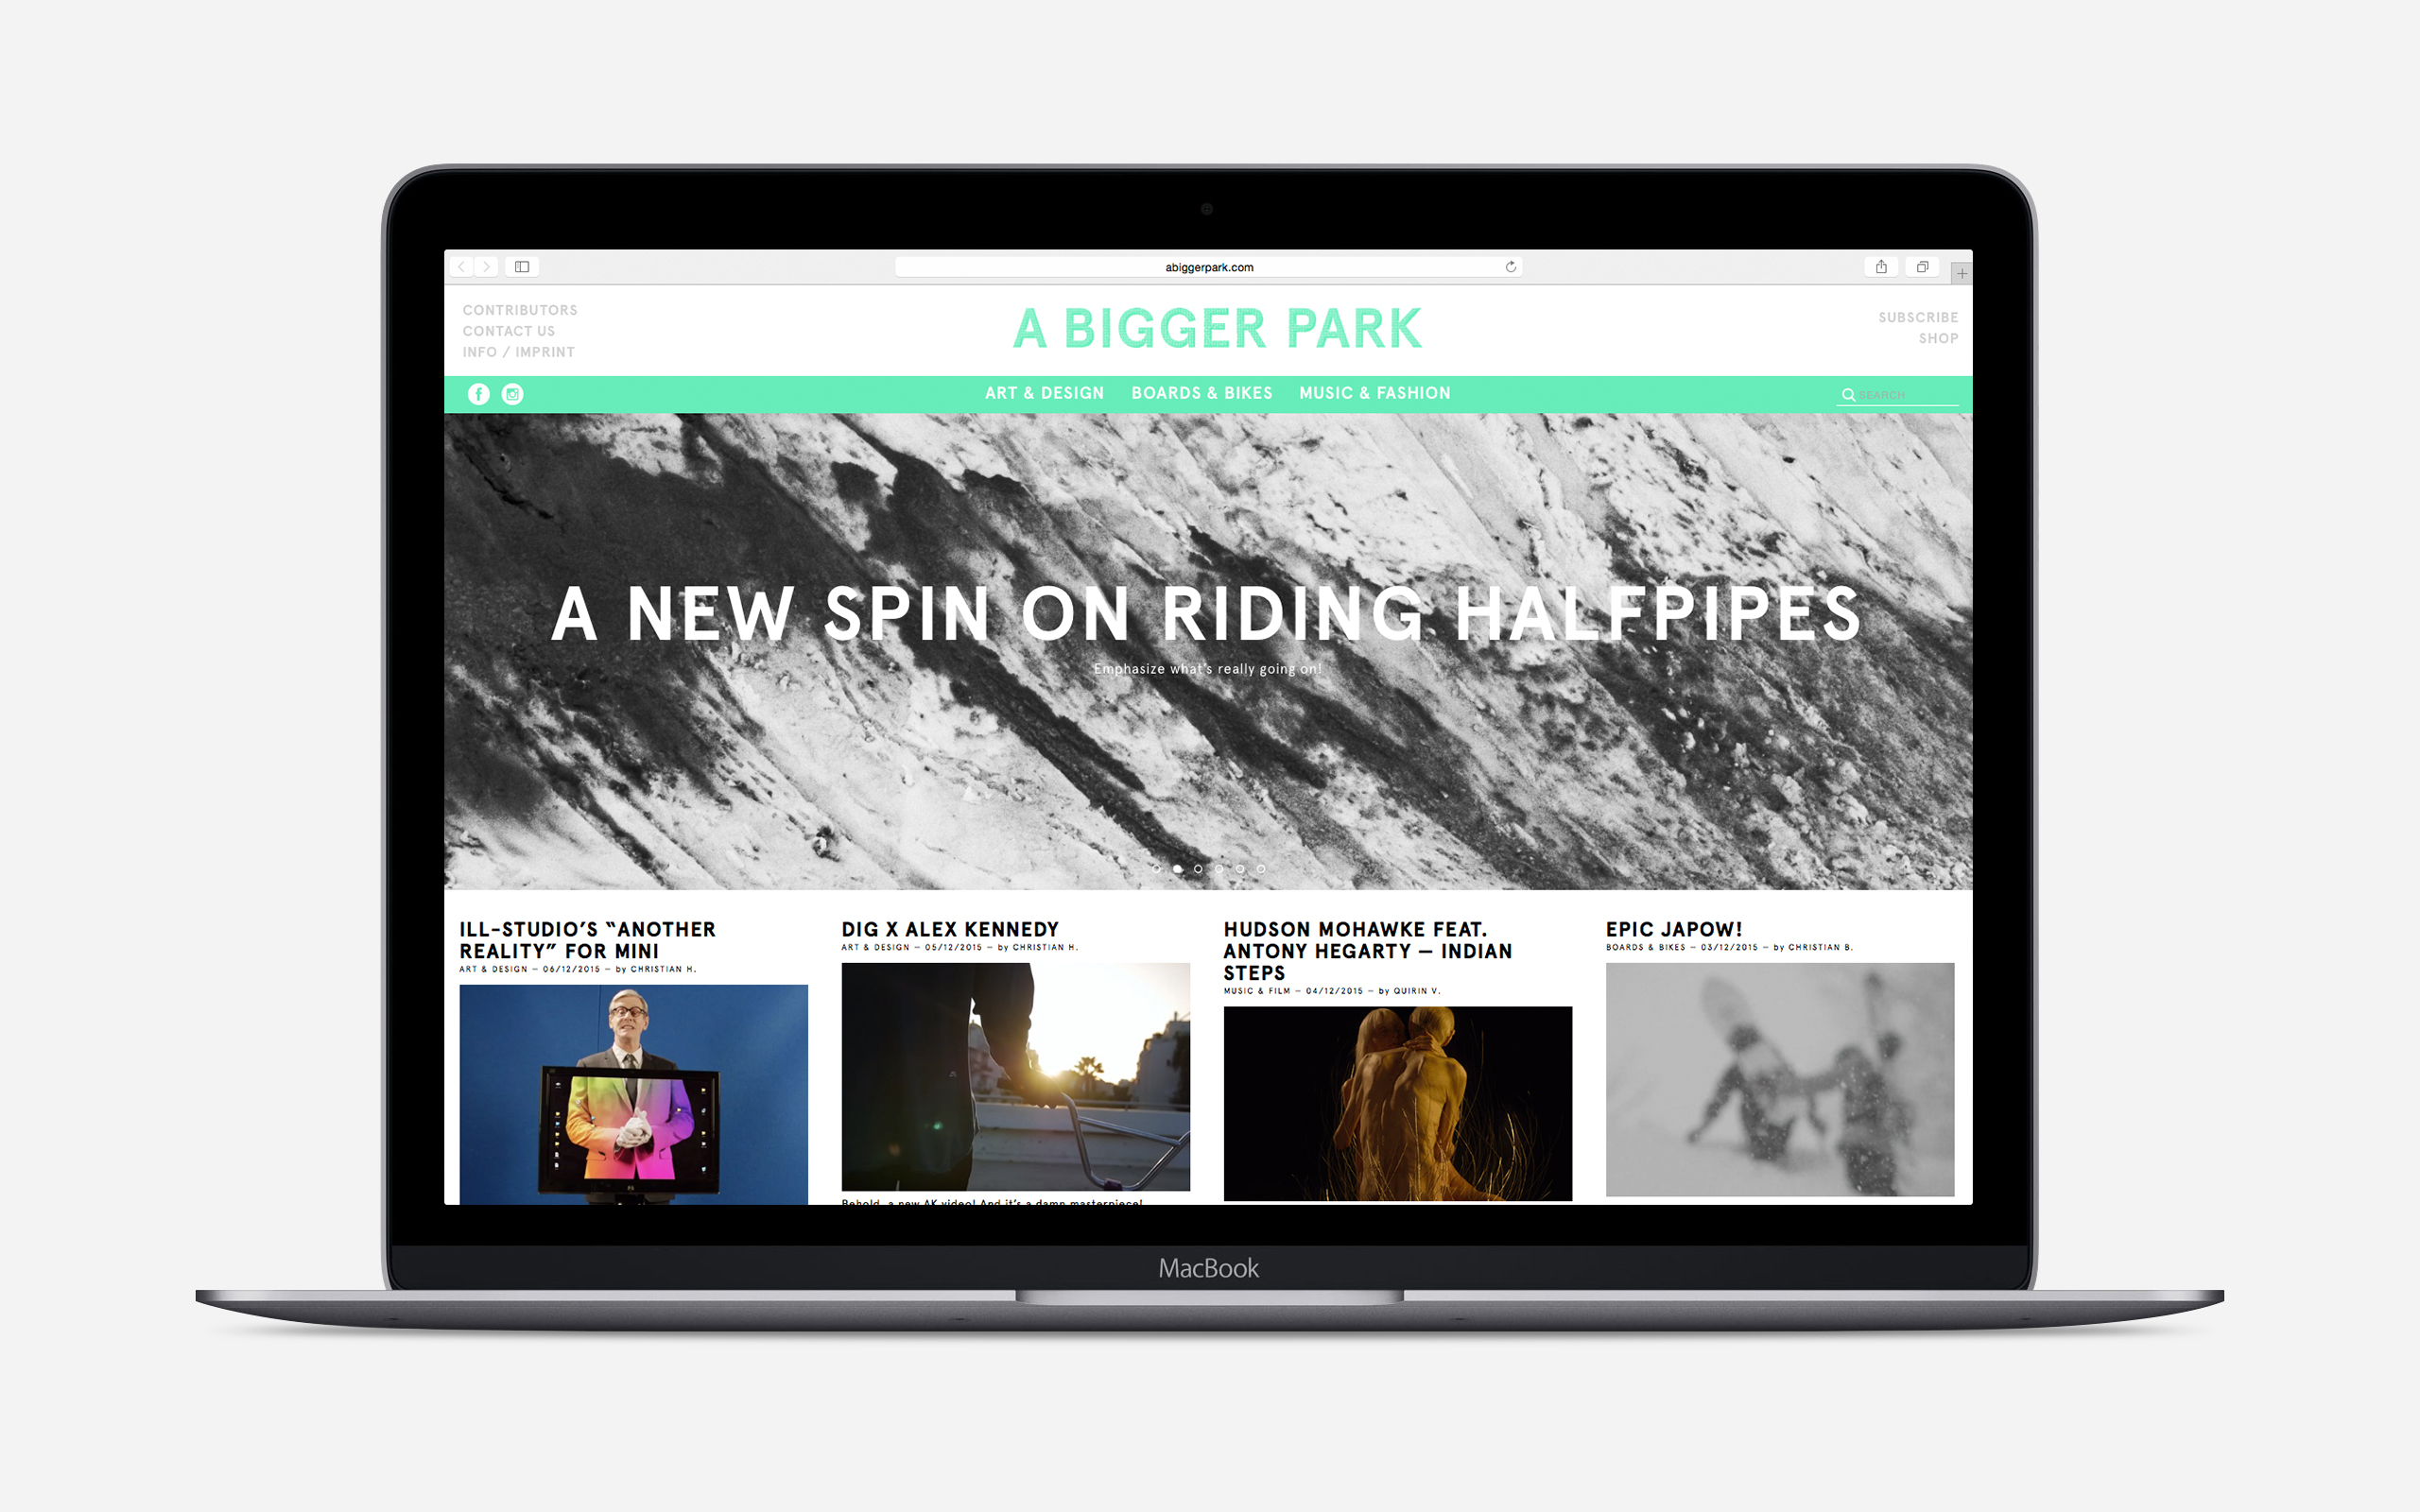 20151207-A Bigger Park-Website-2